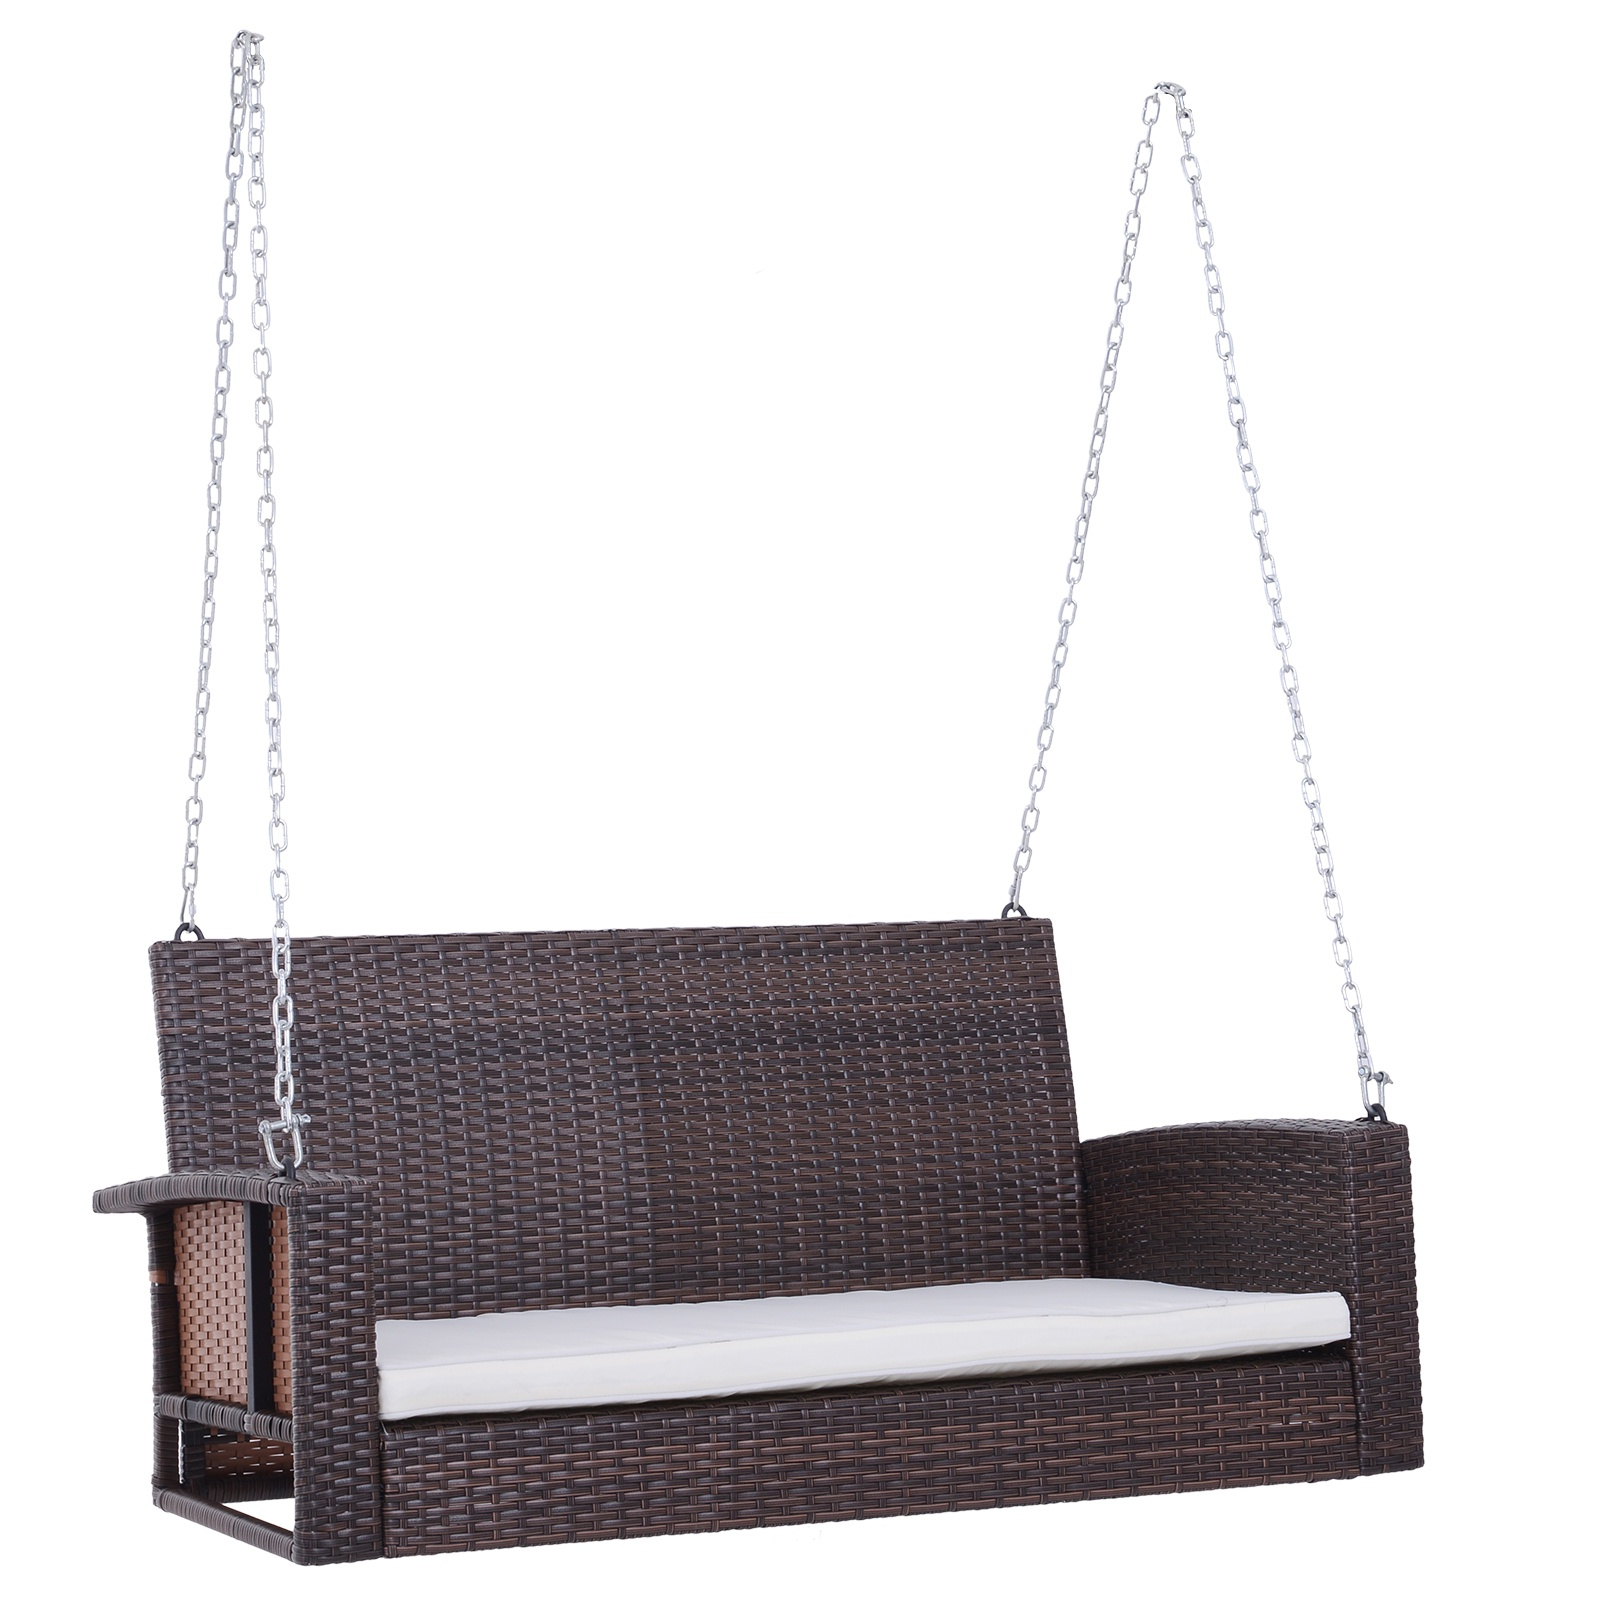 Outsunny 2 Person Outdoor Wicker Hanging Porch Swing Bench With Super Comfortable Lounging Cushions Curved Seat Brown Hammocks Swings Aosom